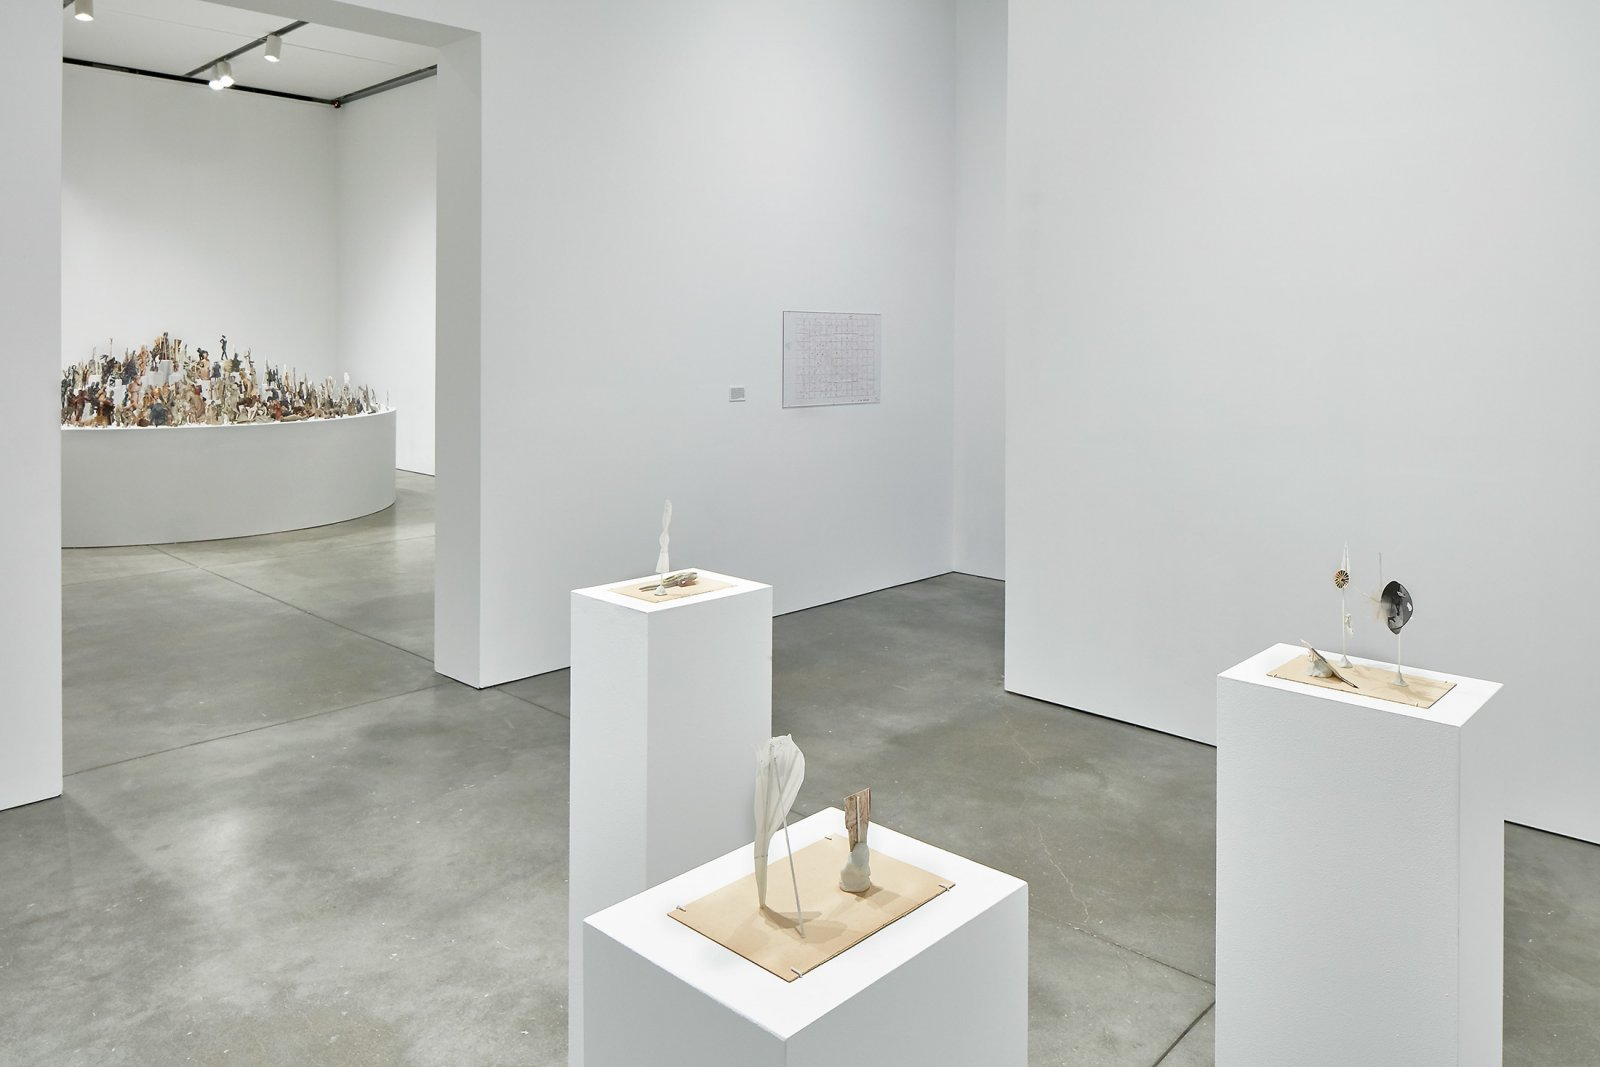 ​Geoffrey Farmer, installation view, Institute of Contemporary Art, Boston, 2016 by Geoffrey Farmer